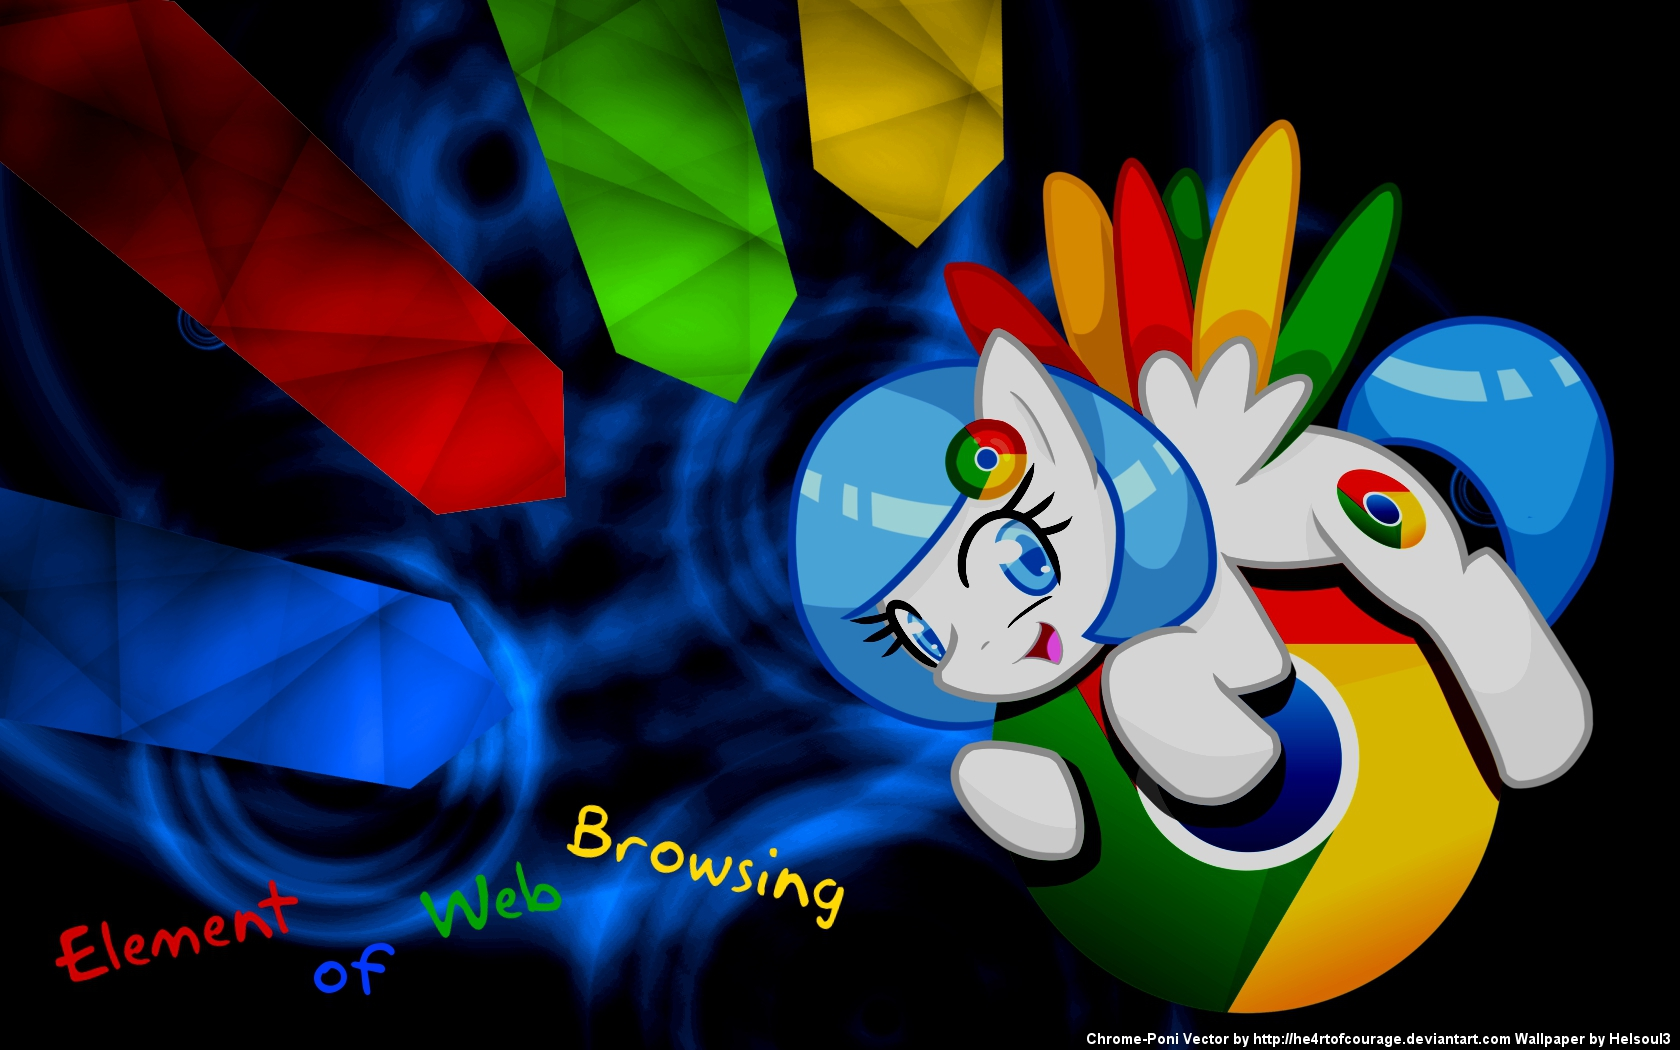 Chrome Pony Wallpaper by he4rtofcourage and Helsoul3